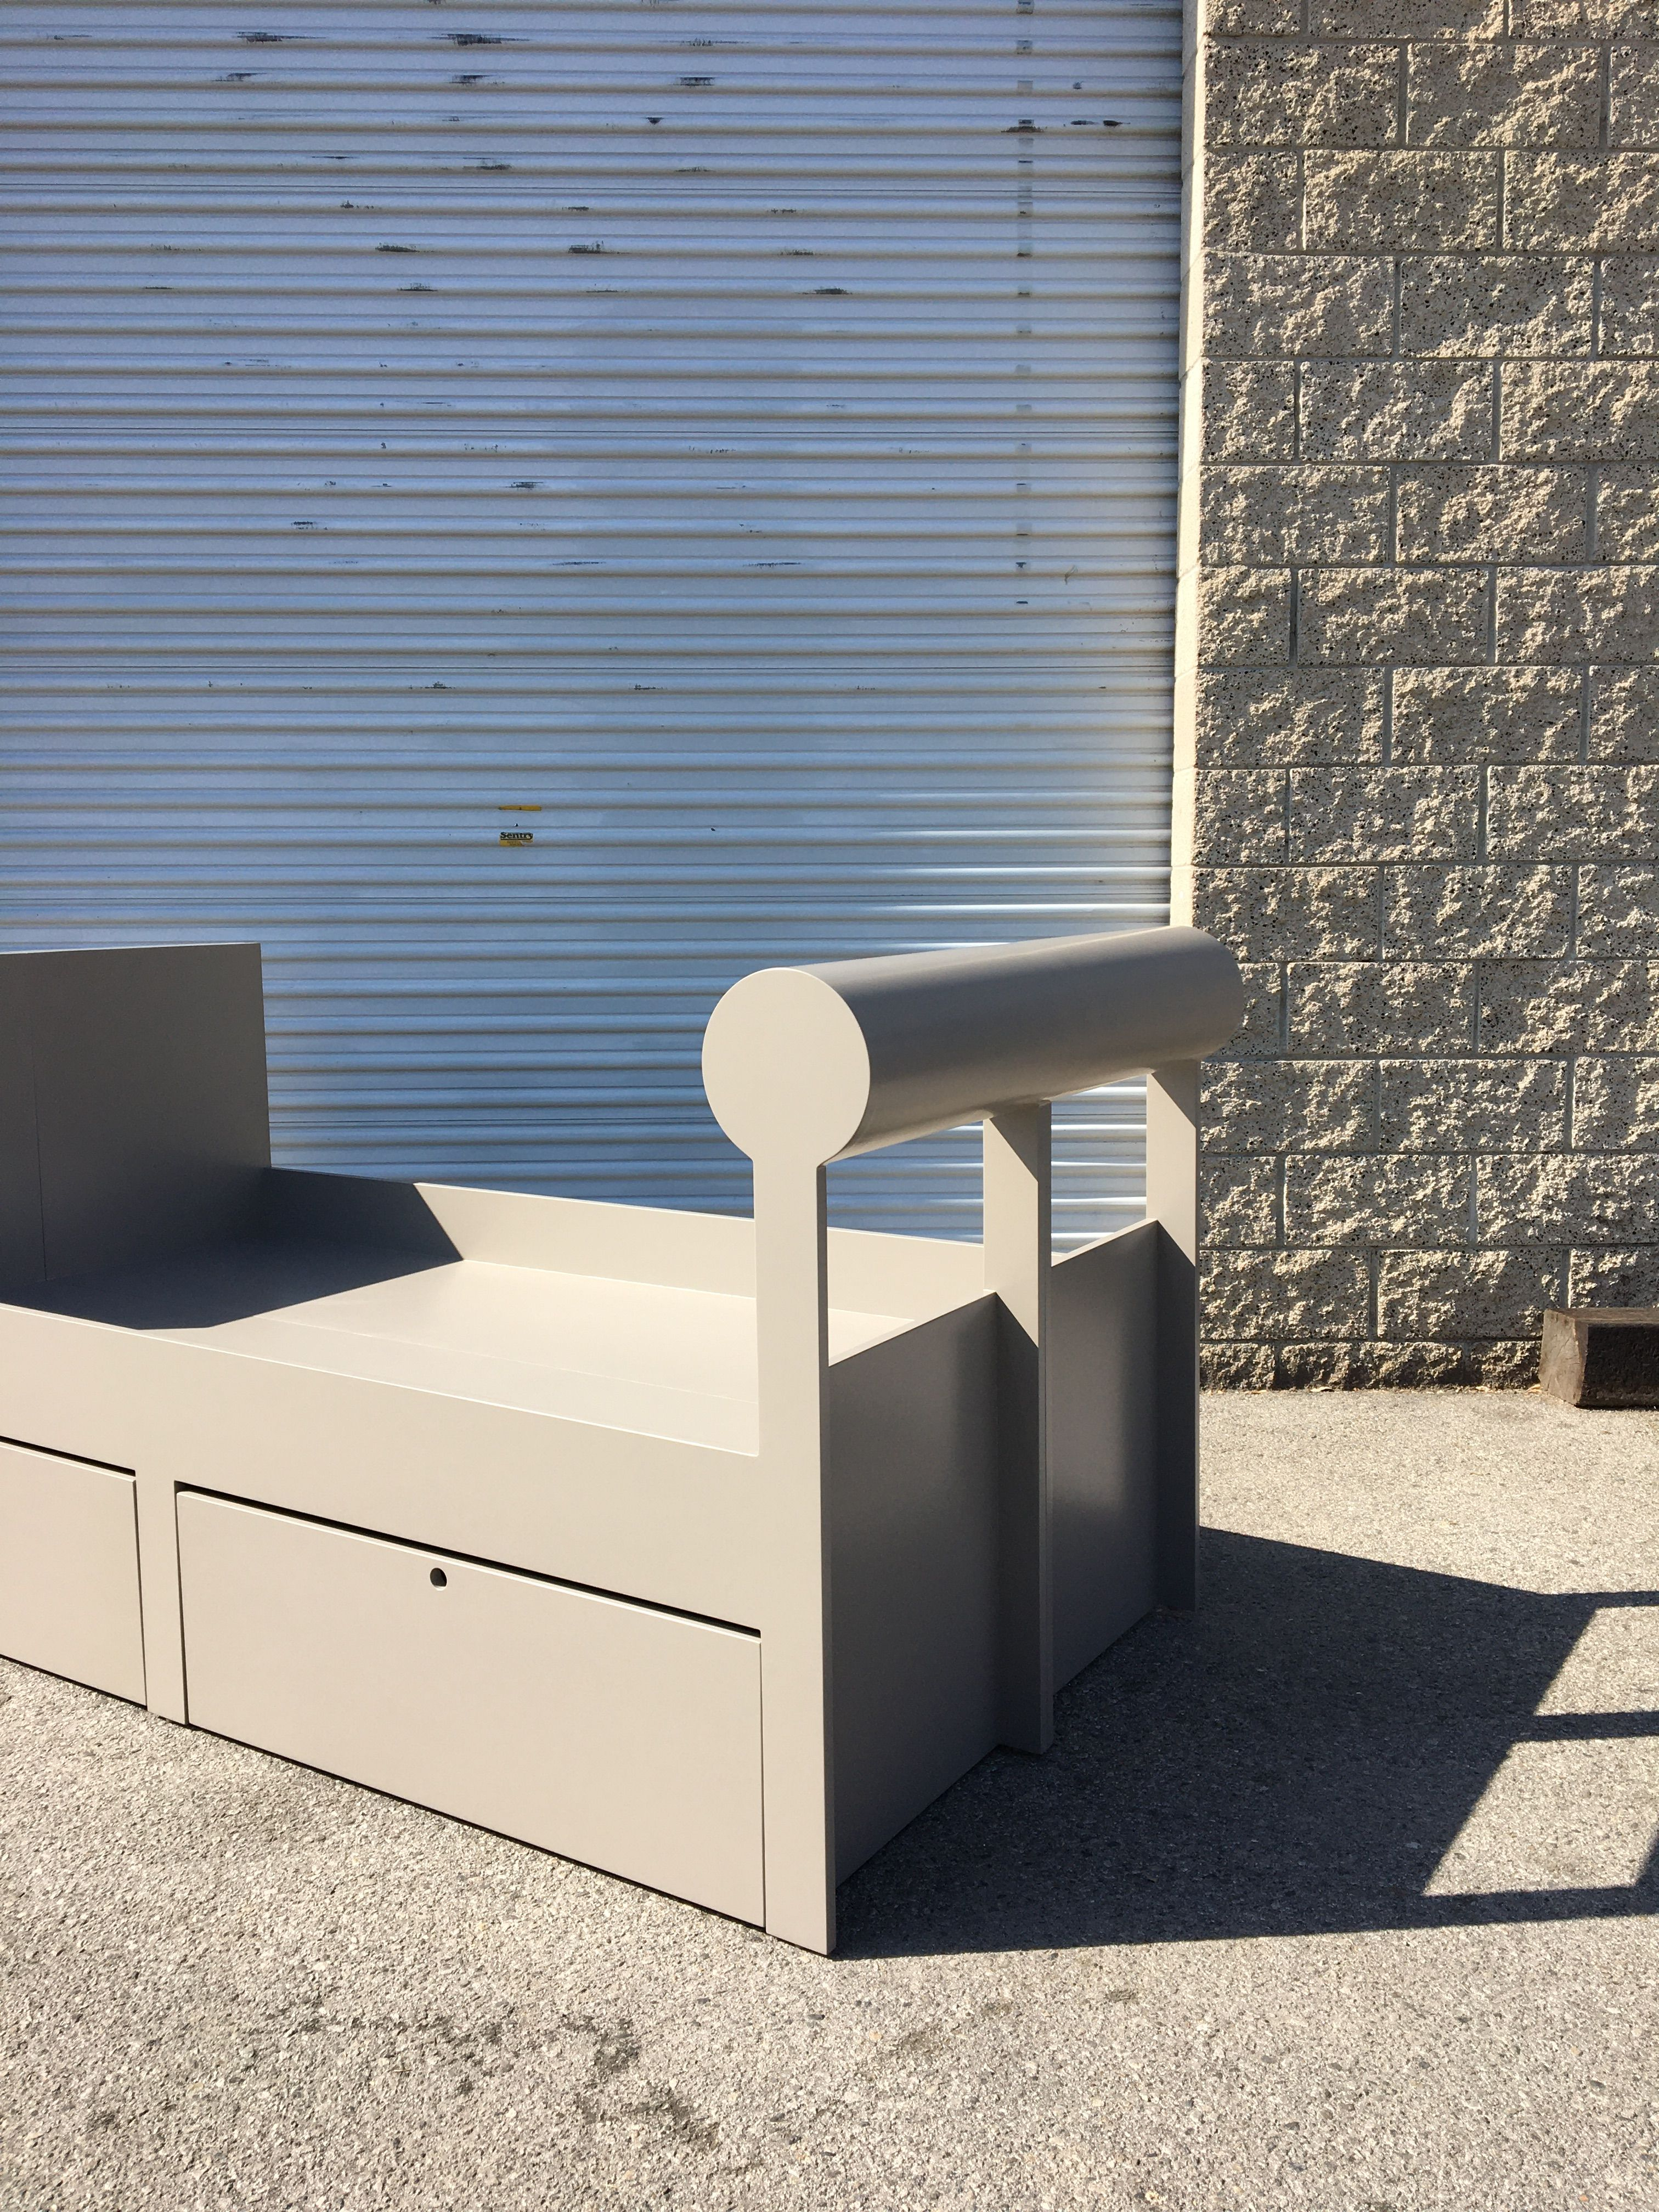 Cylinder Bed - Drawers product image 4